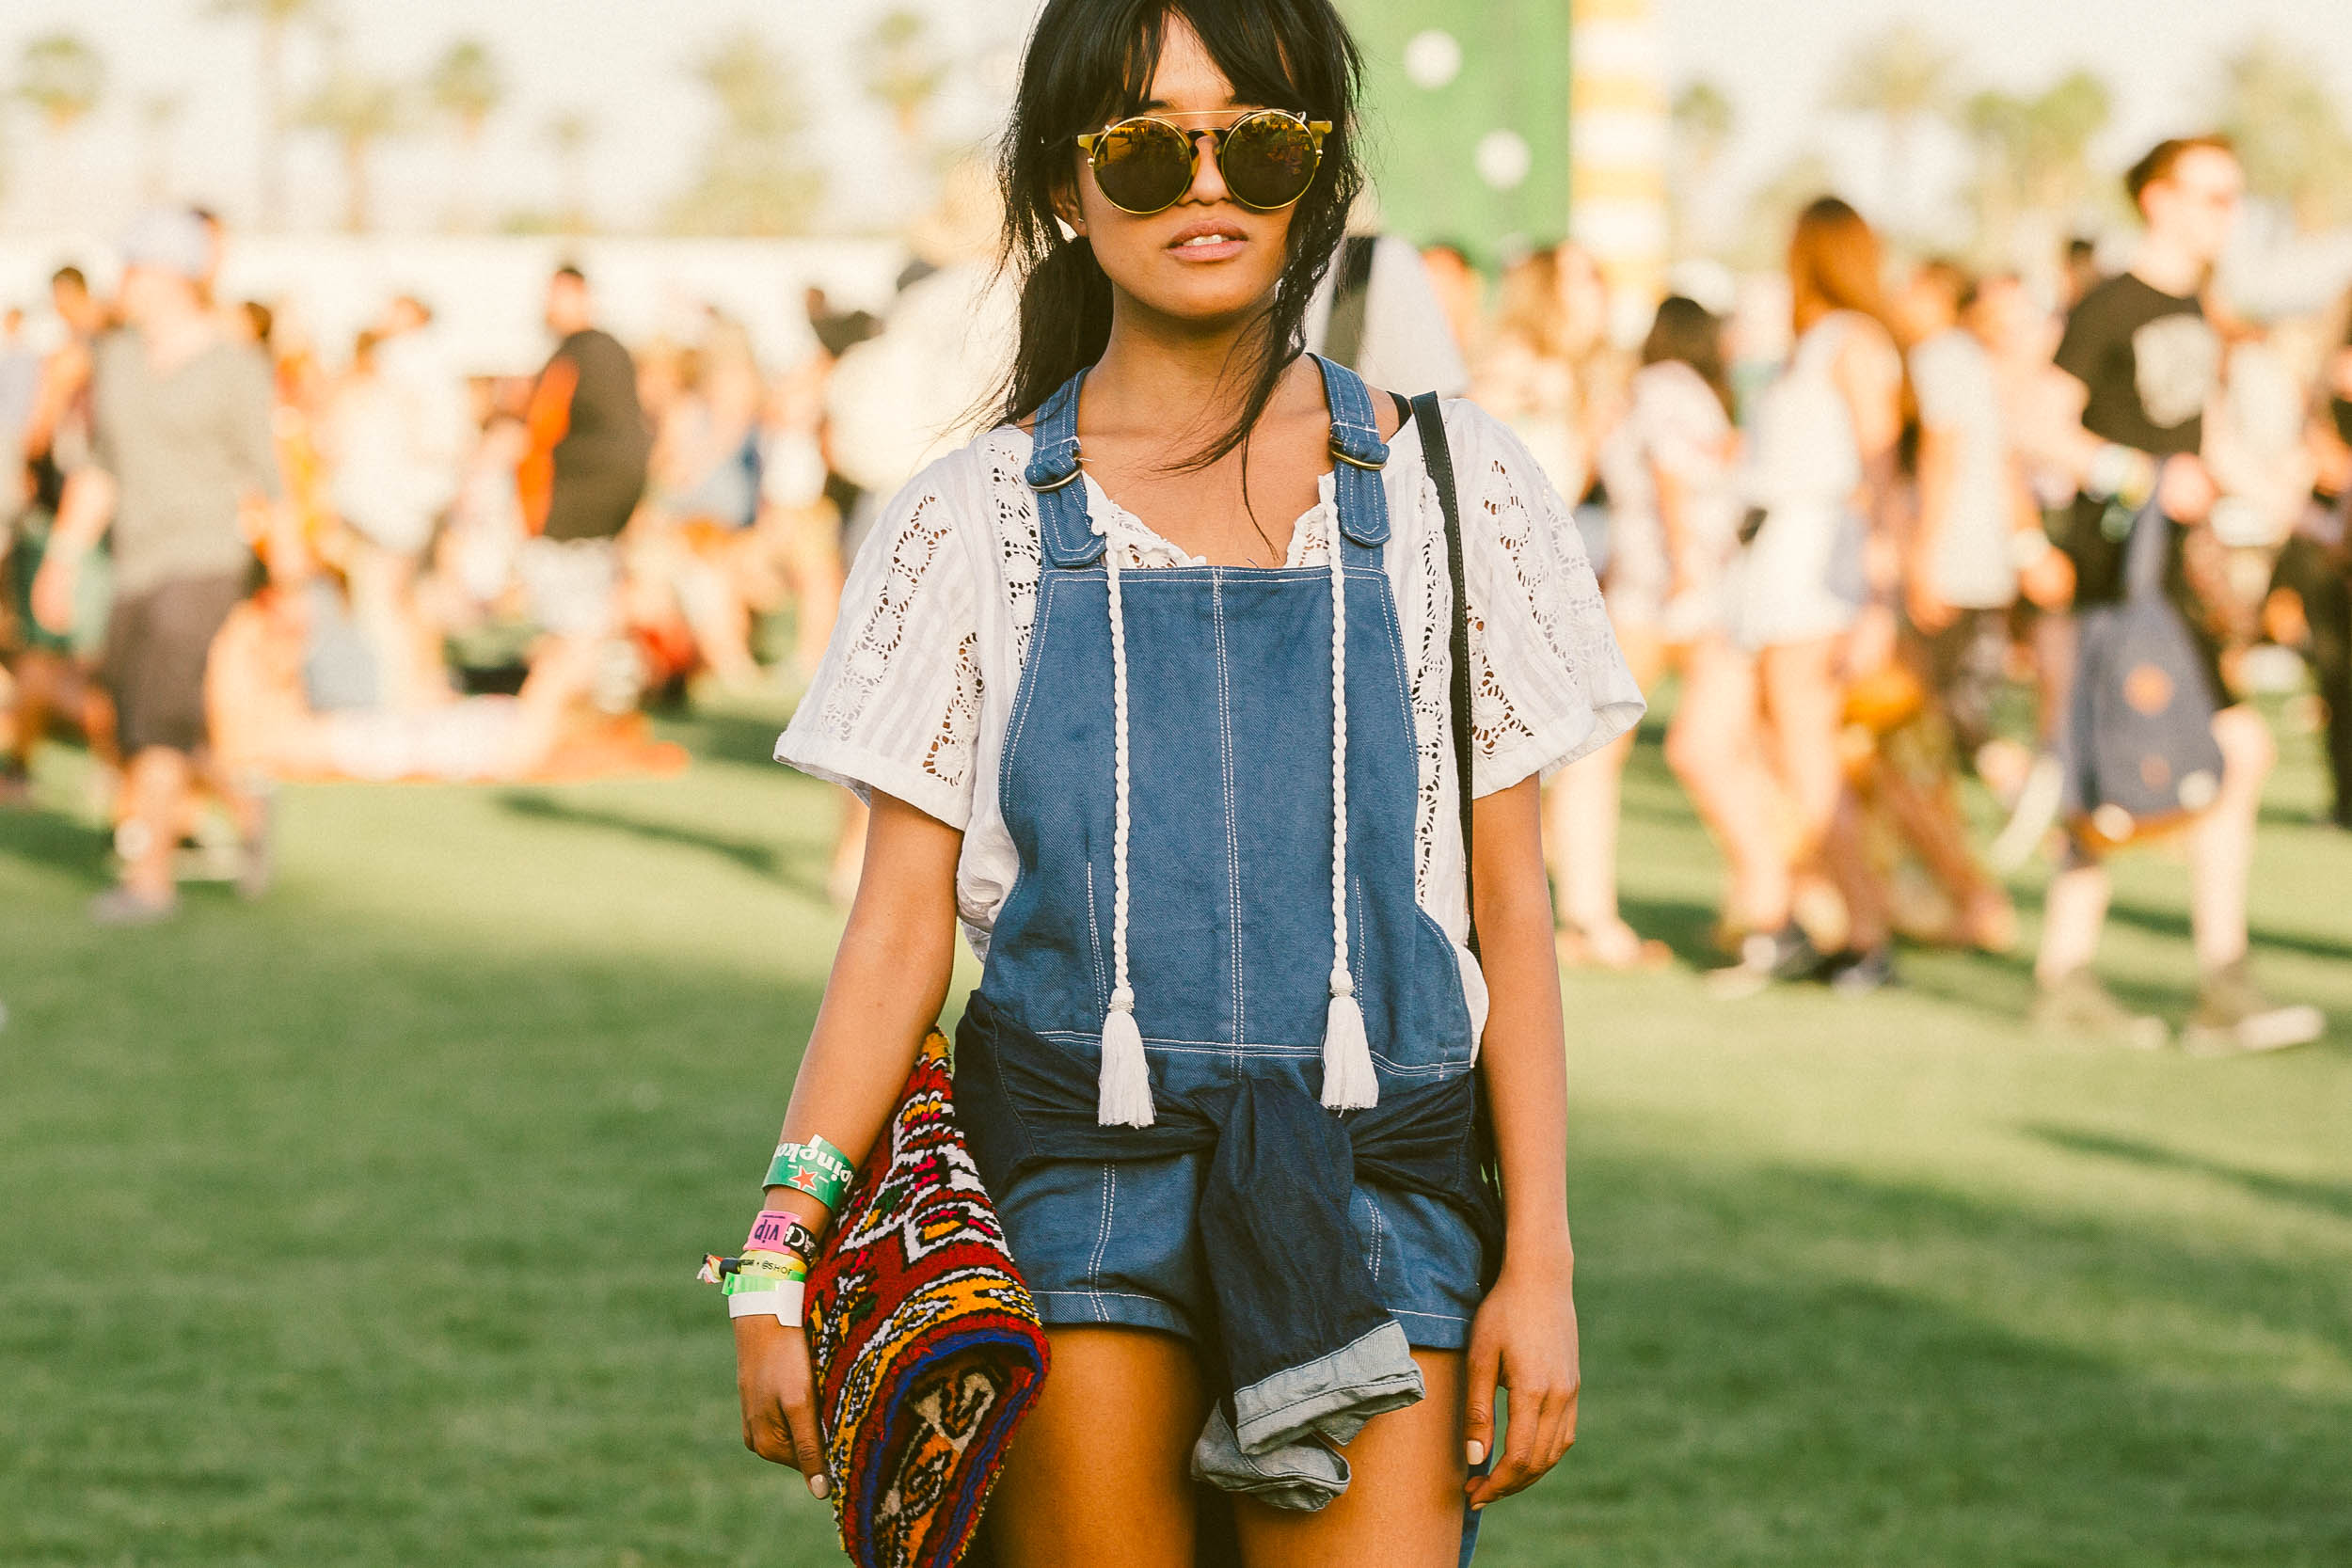 Three Stylish 4th of July Outfit Ideas, and How to Make Them Your Own